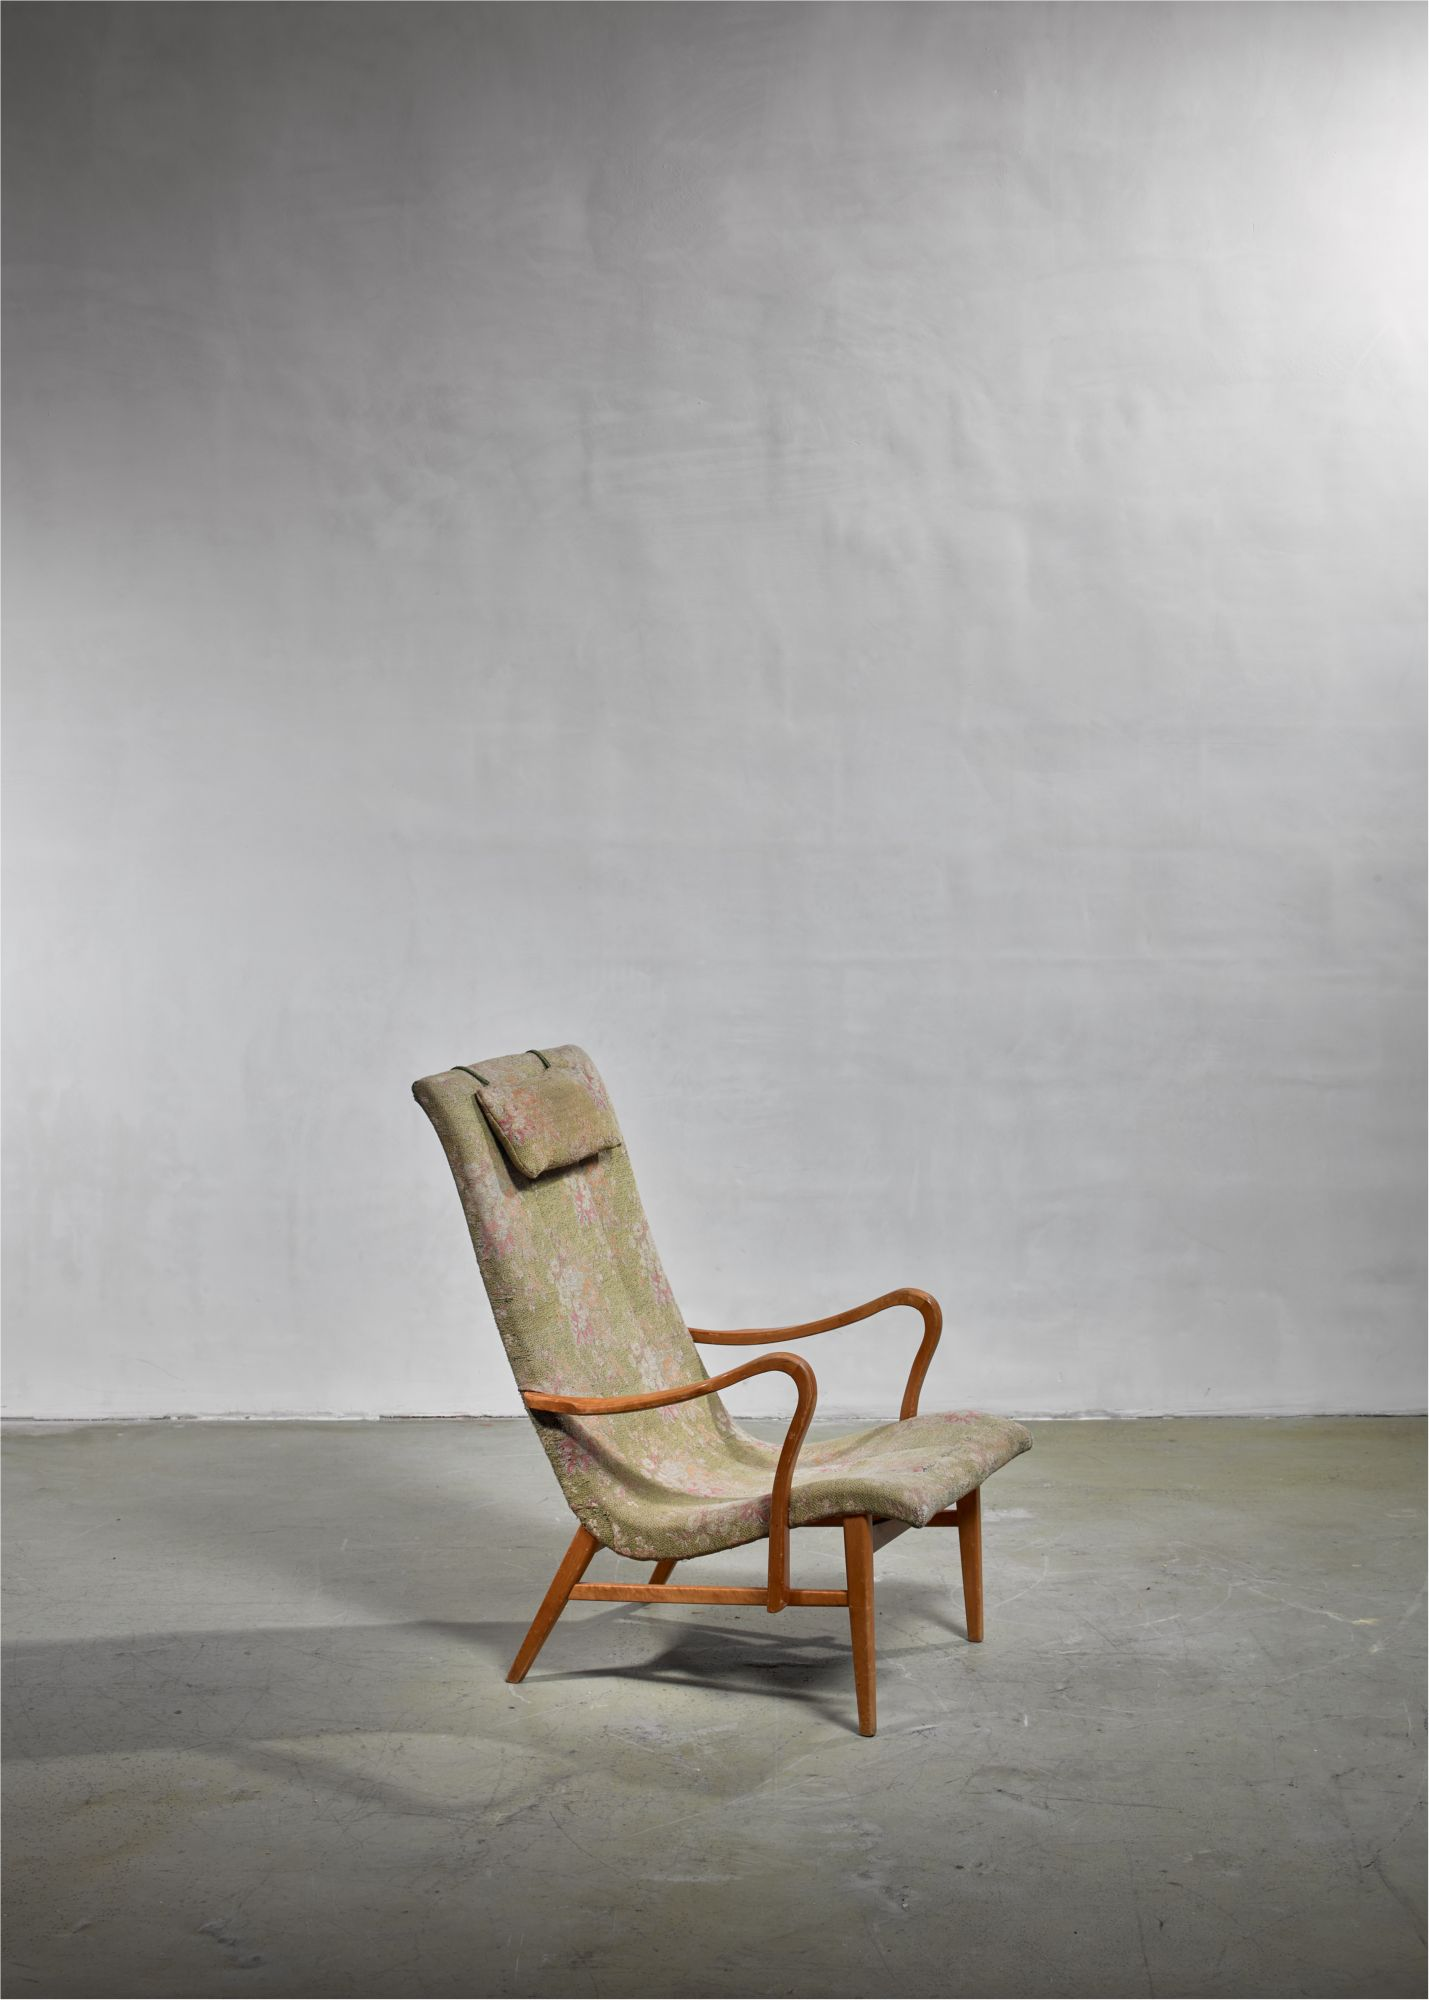 Enjoyable Carl Axel Acking Lounge Chair With Aged Floral Upholstery Squirreltailoven Fun Painted Chair Ideas Images Squirreltailovenorg